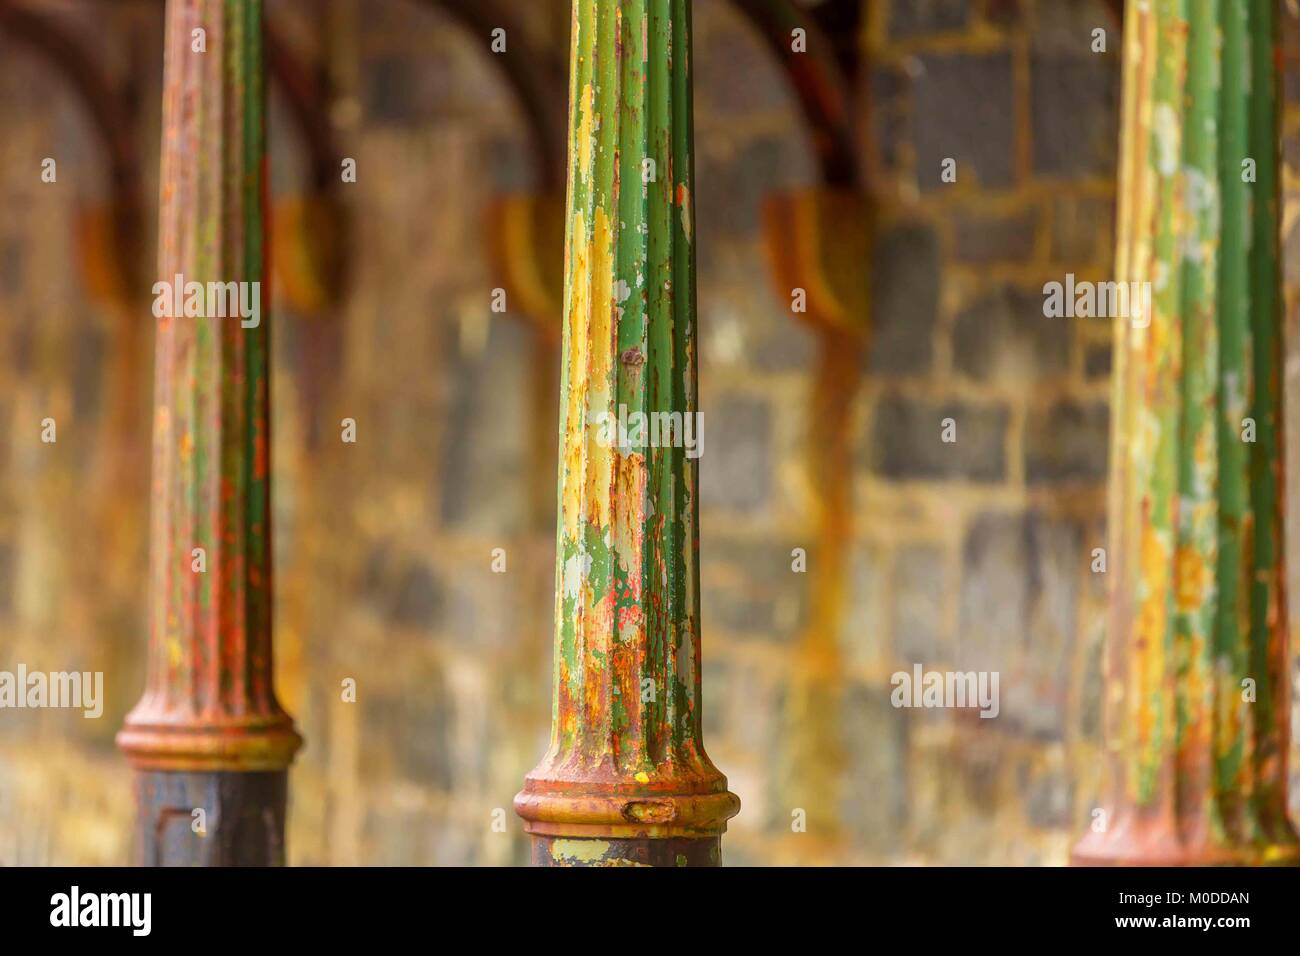 Cast iron support poles rusting in a line. - Stock Image